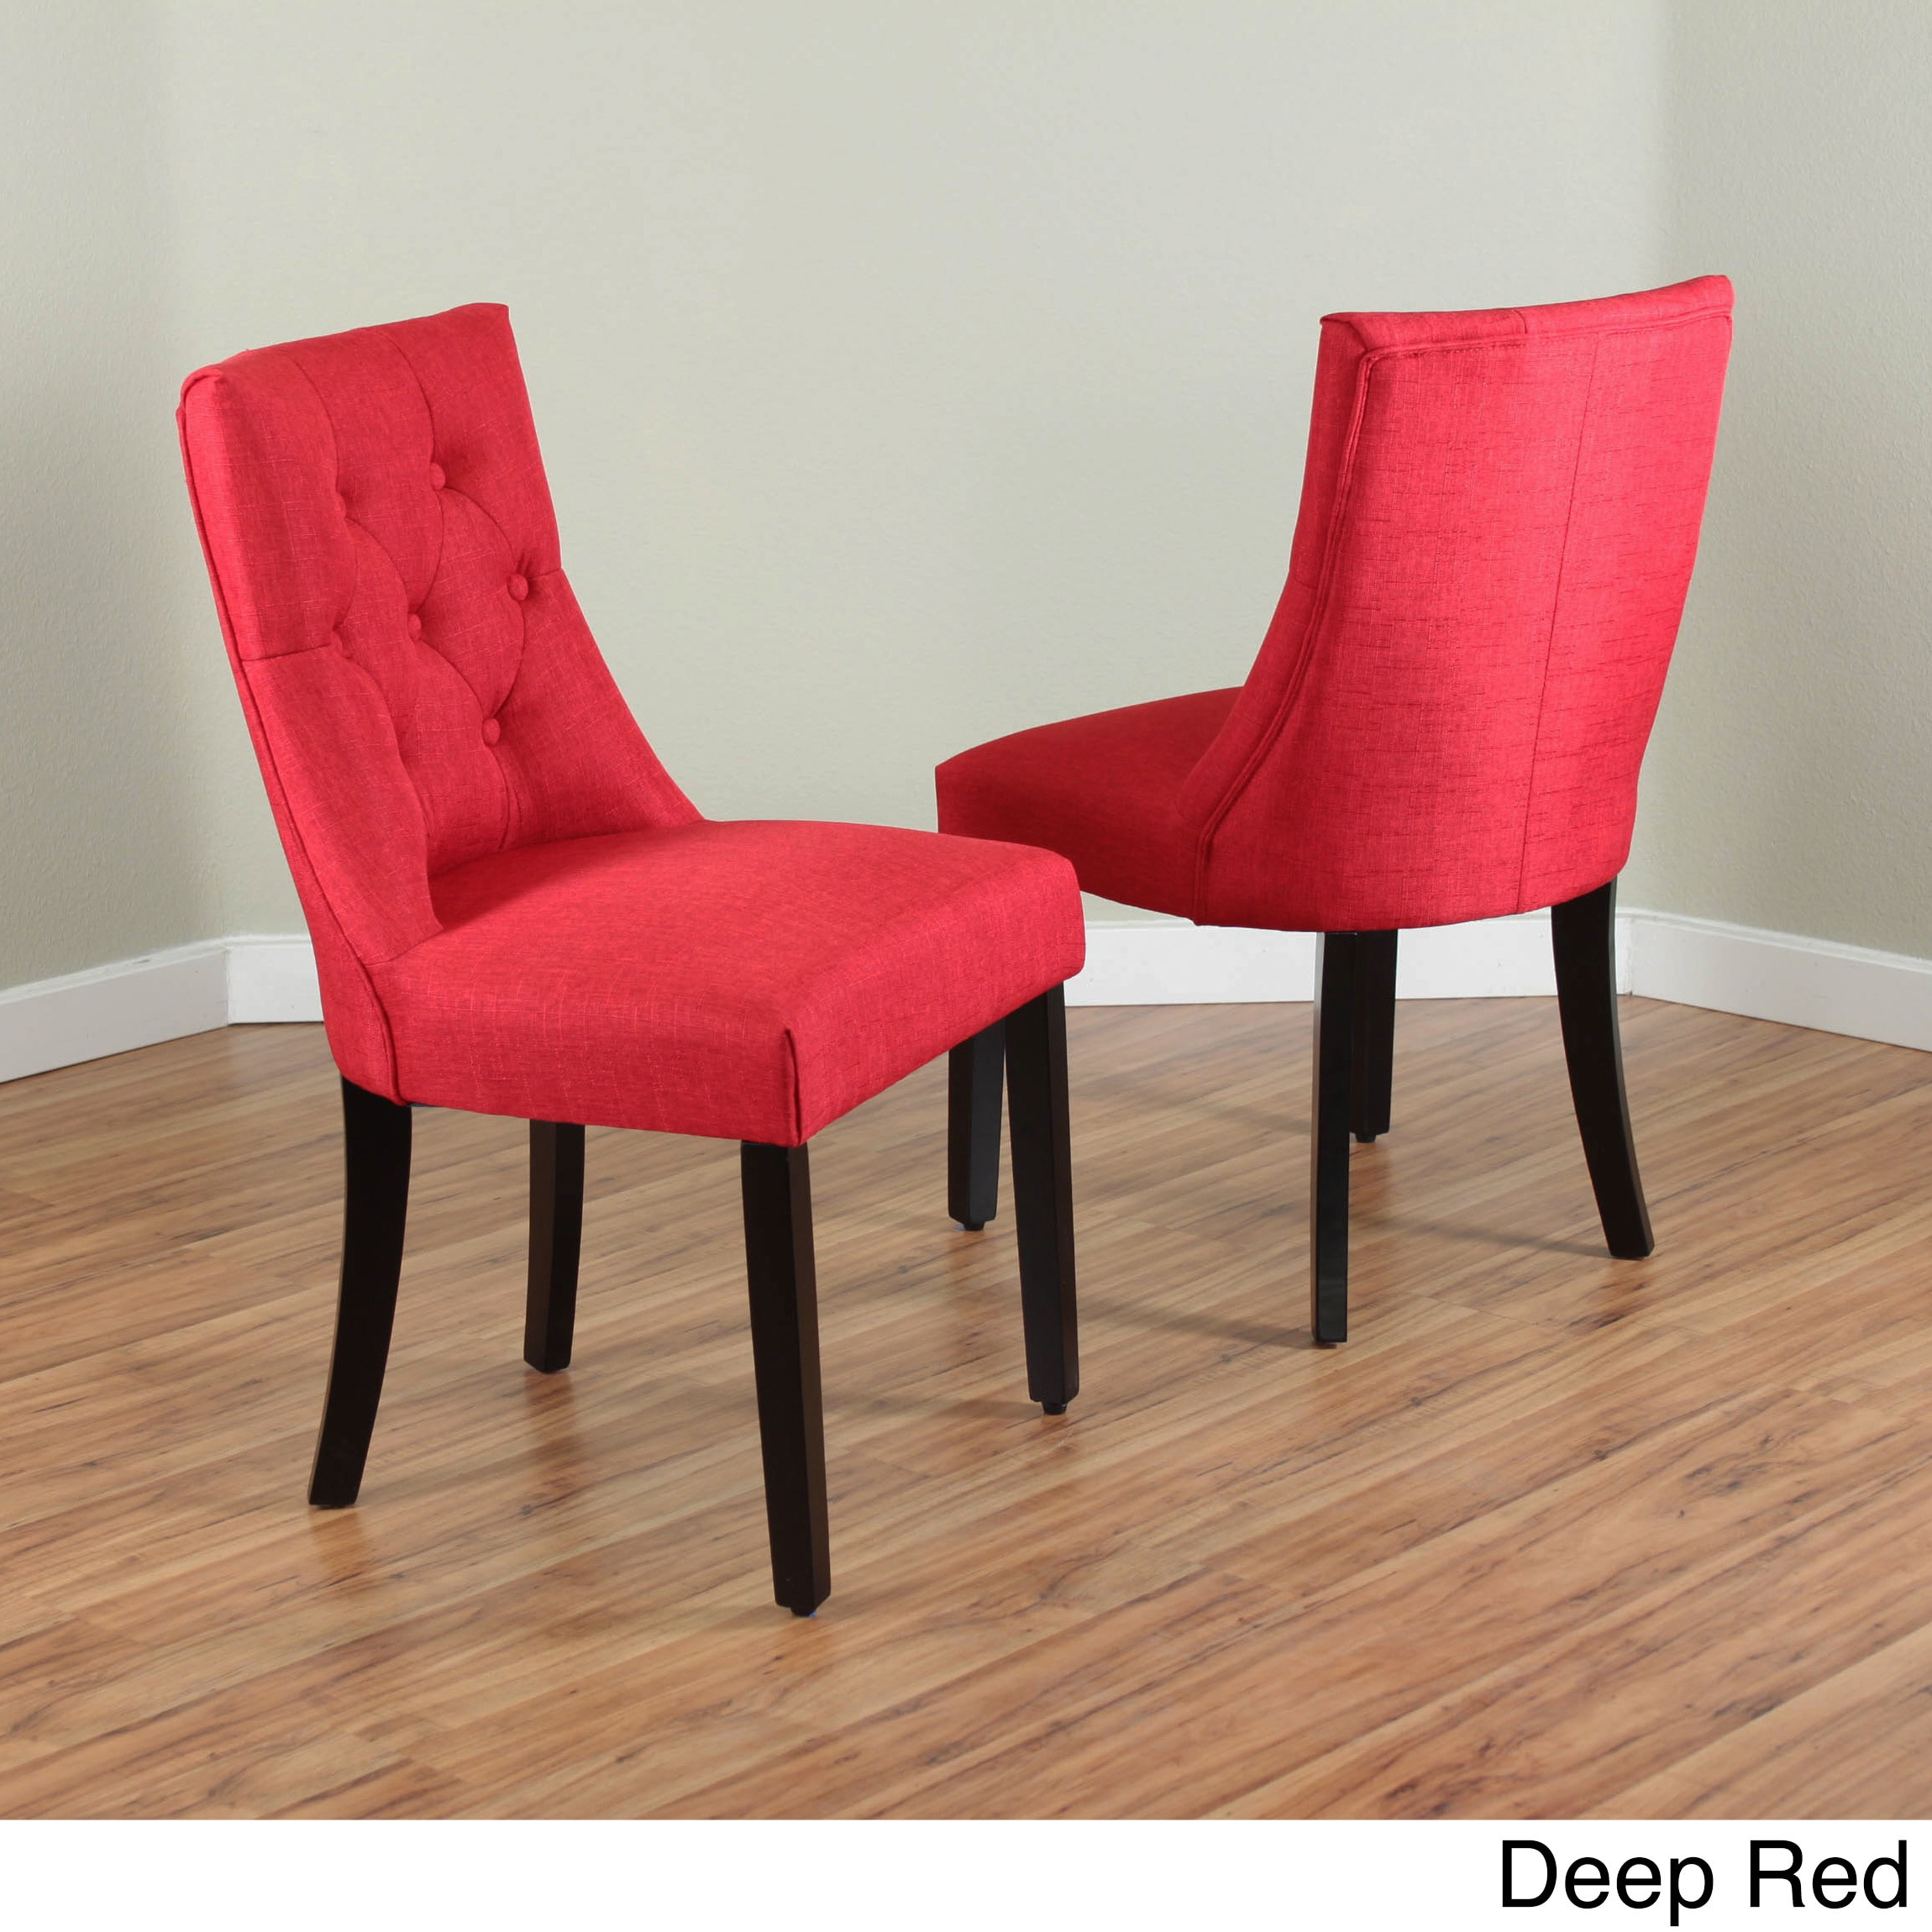 Red Upholstered Dining Chairs Bellcrest Upholstered Dining Chairs Set Of 2